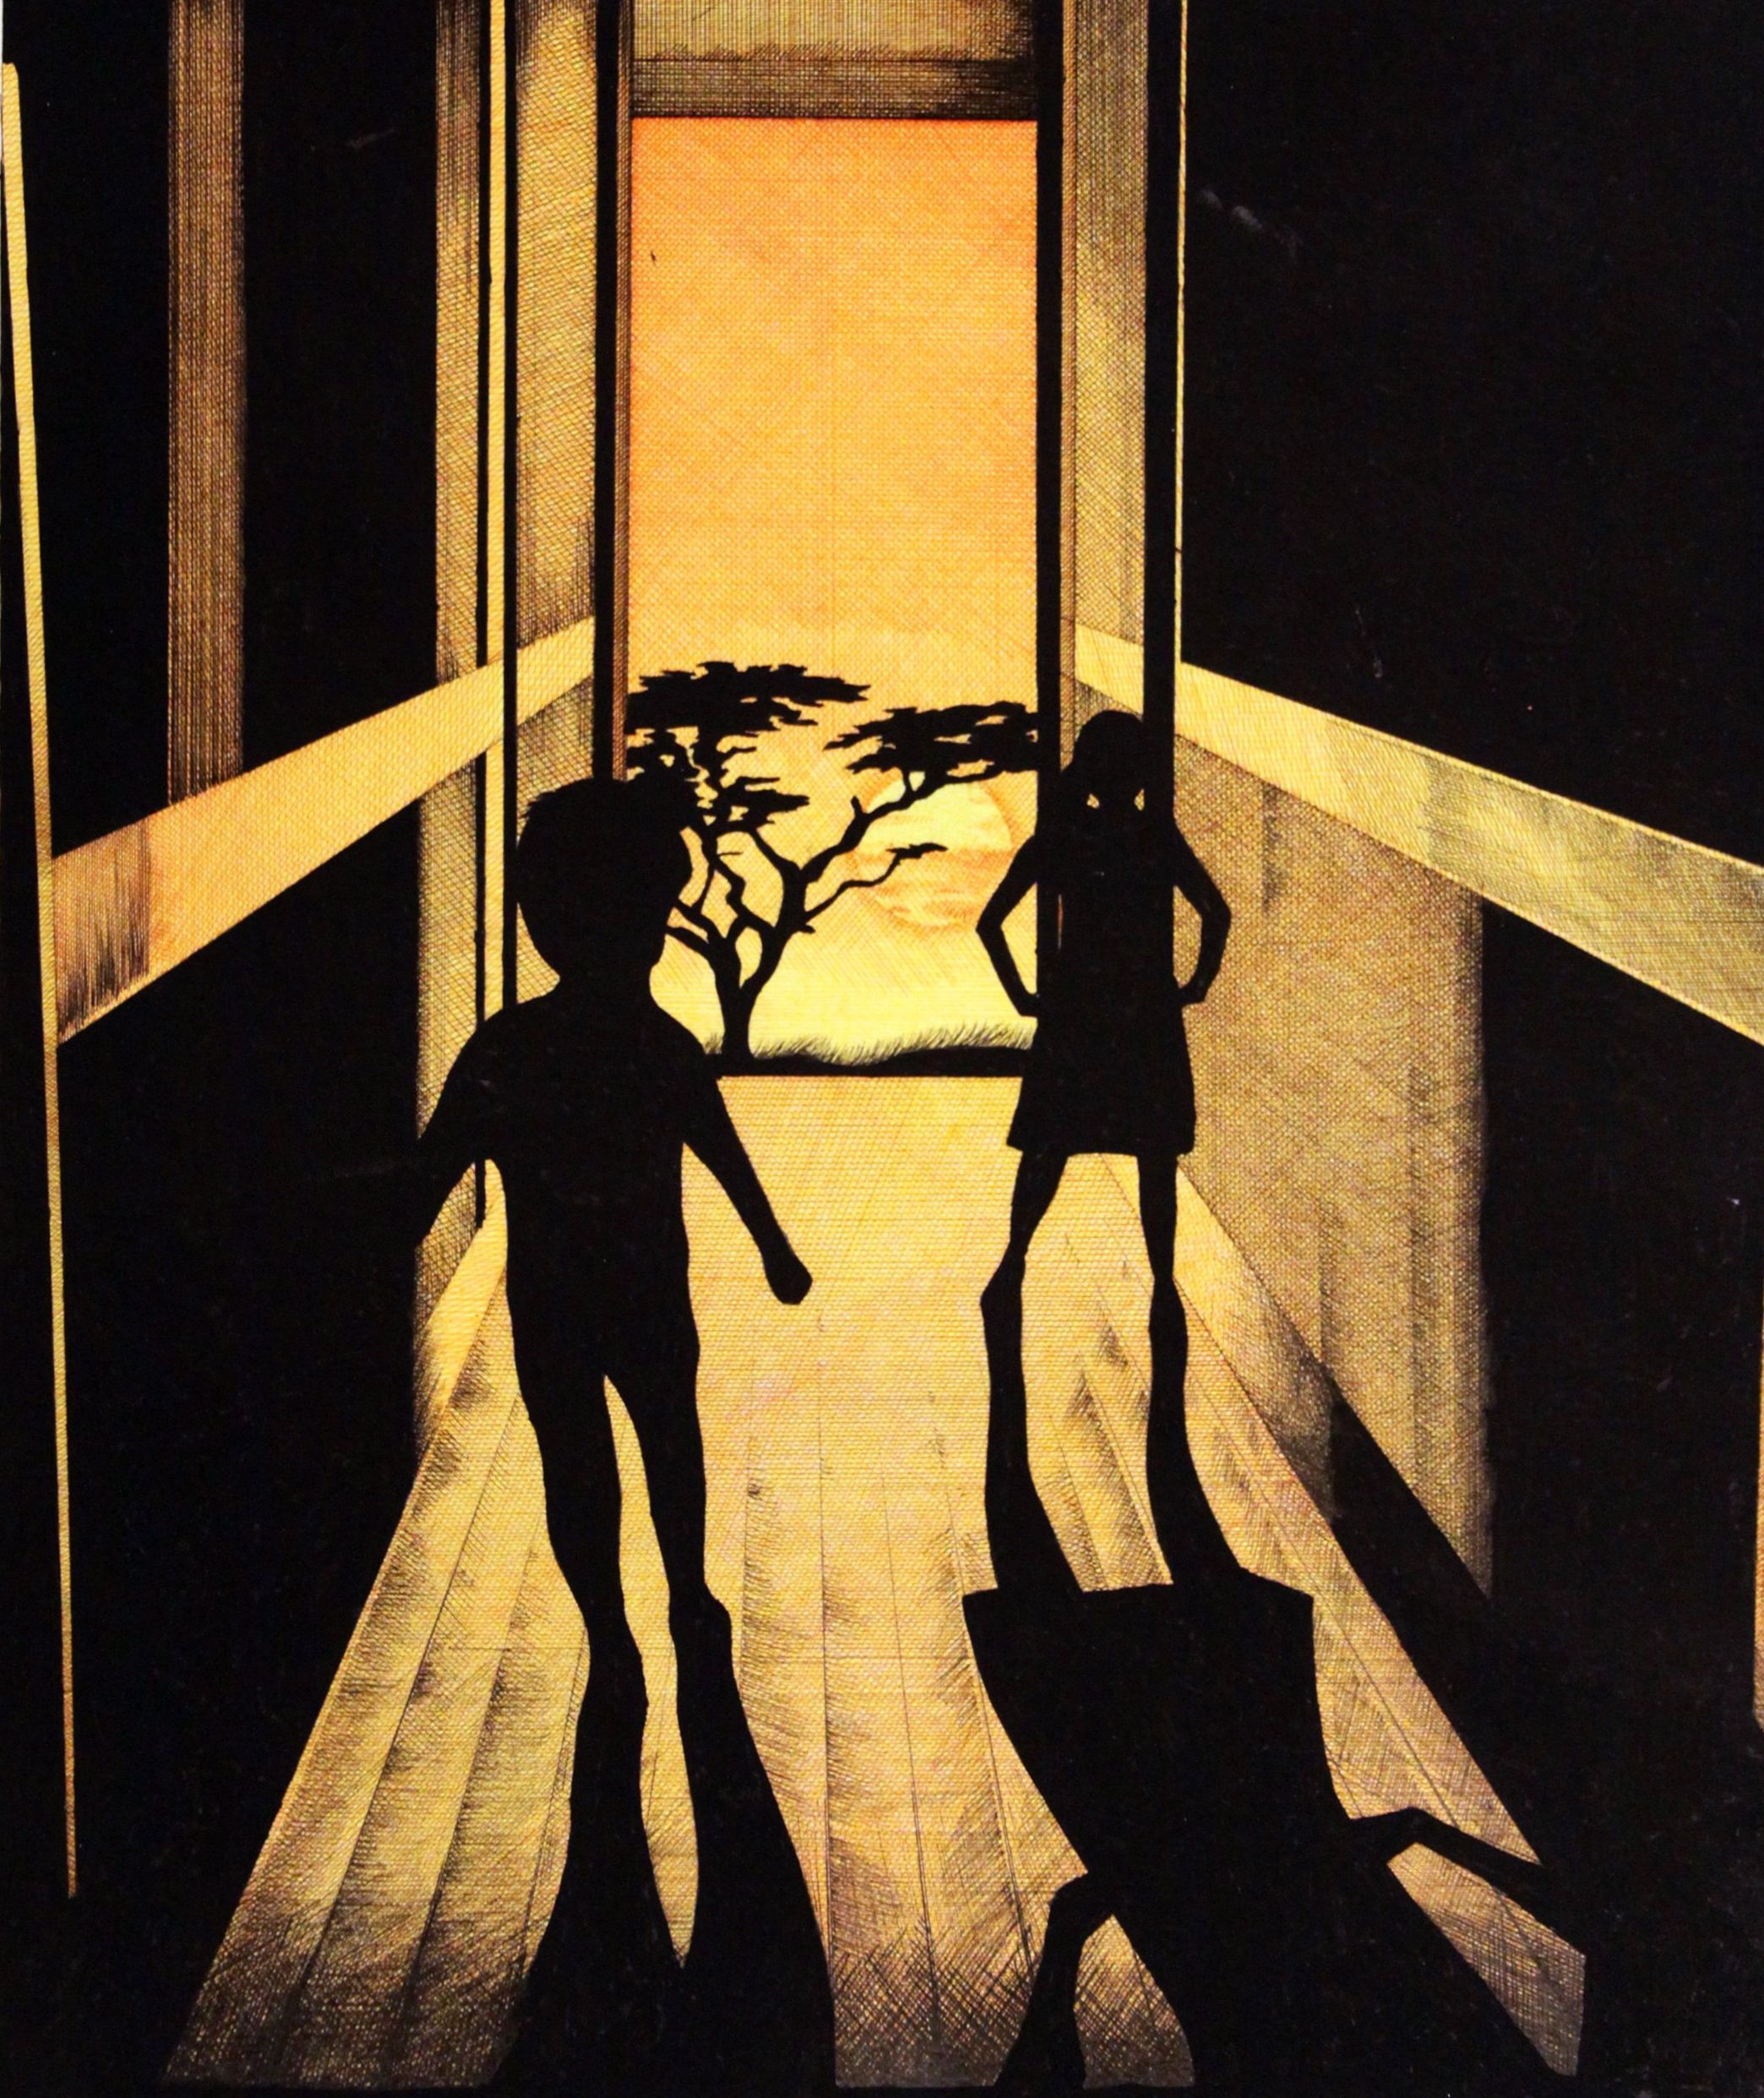 the pedestrian by ray bradbury short story online